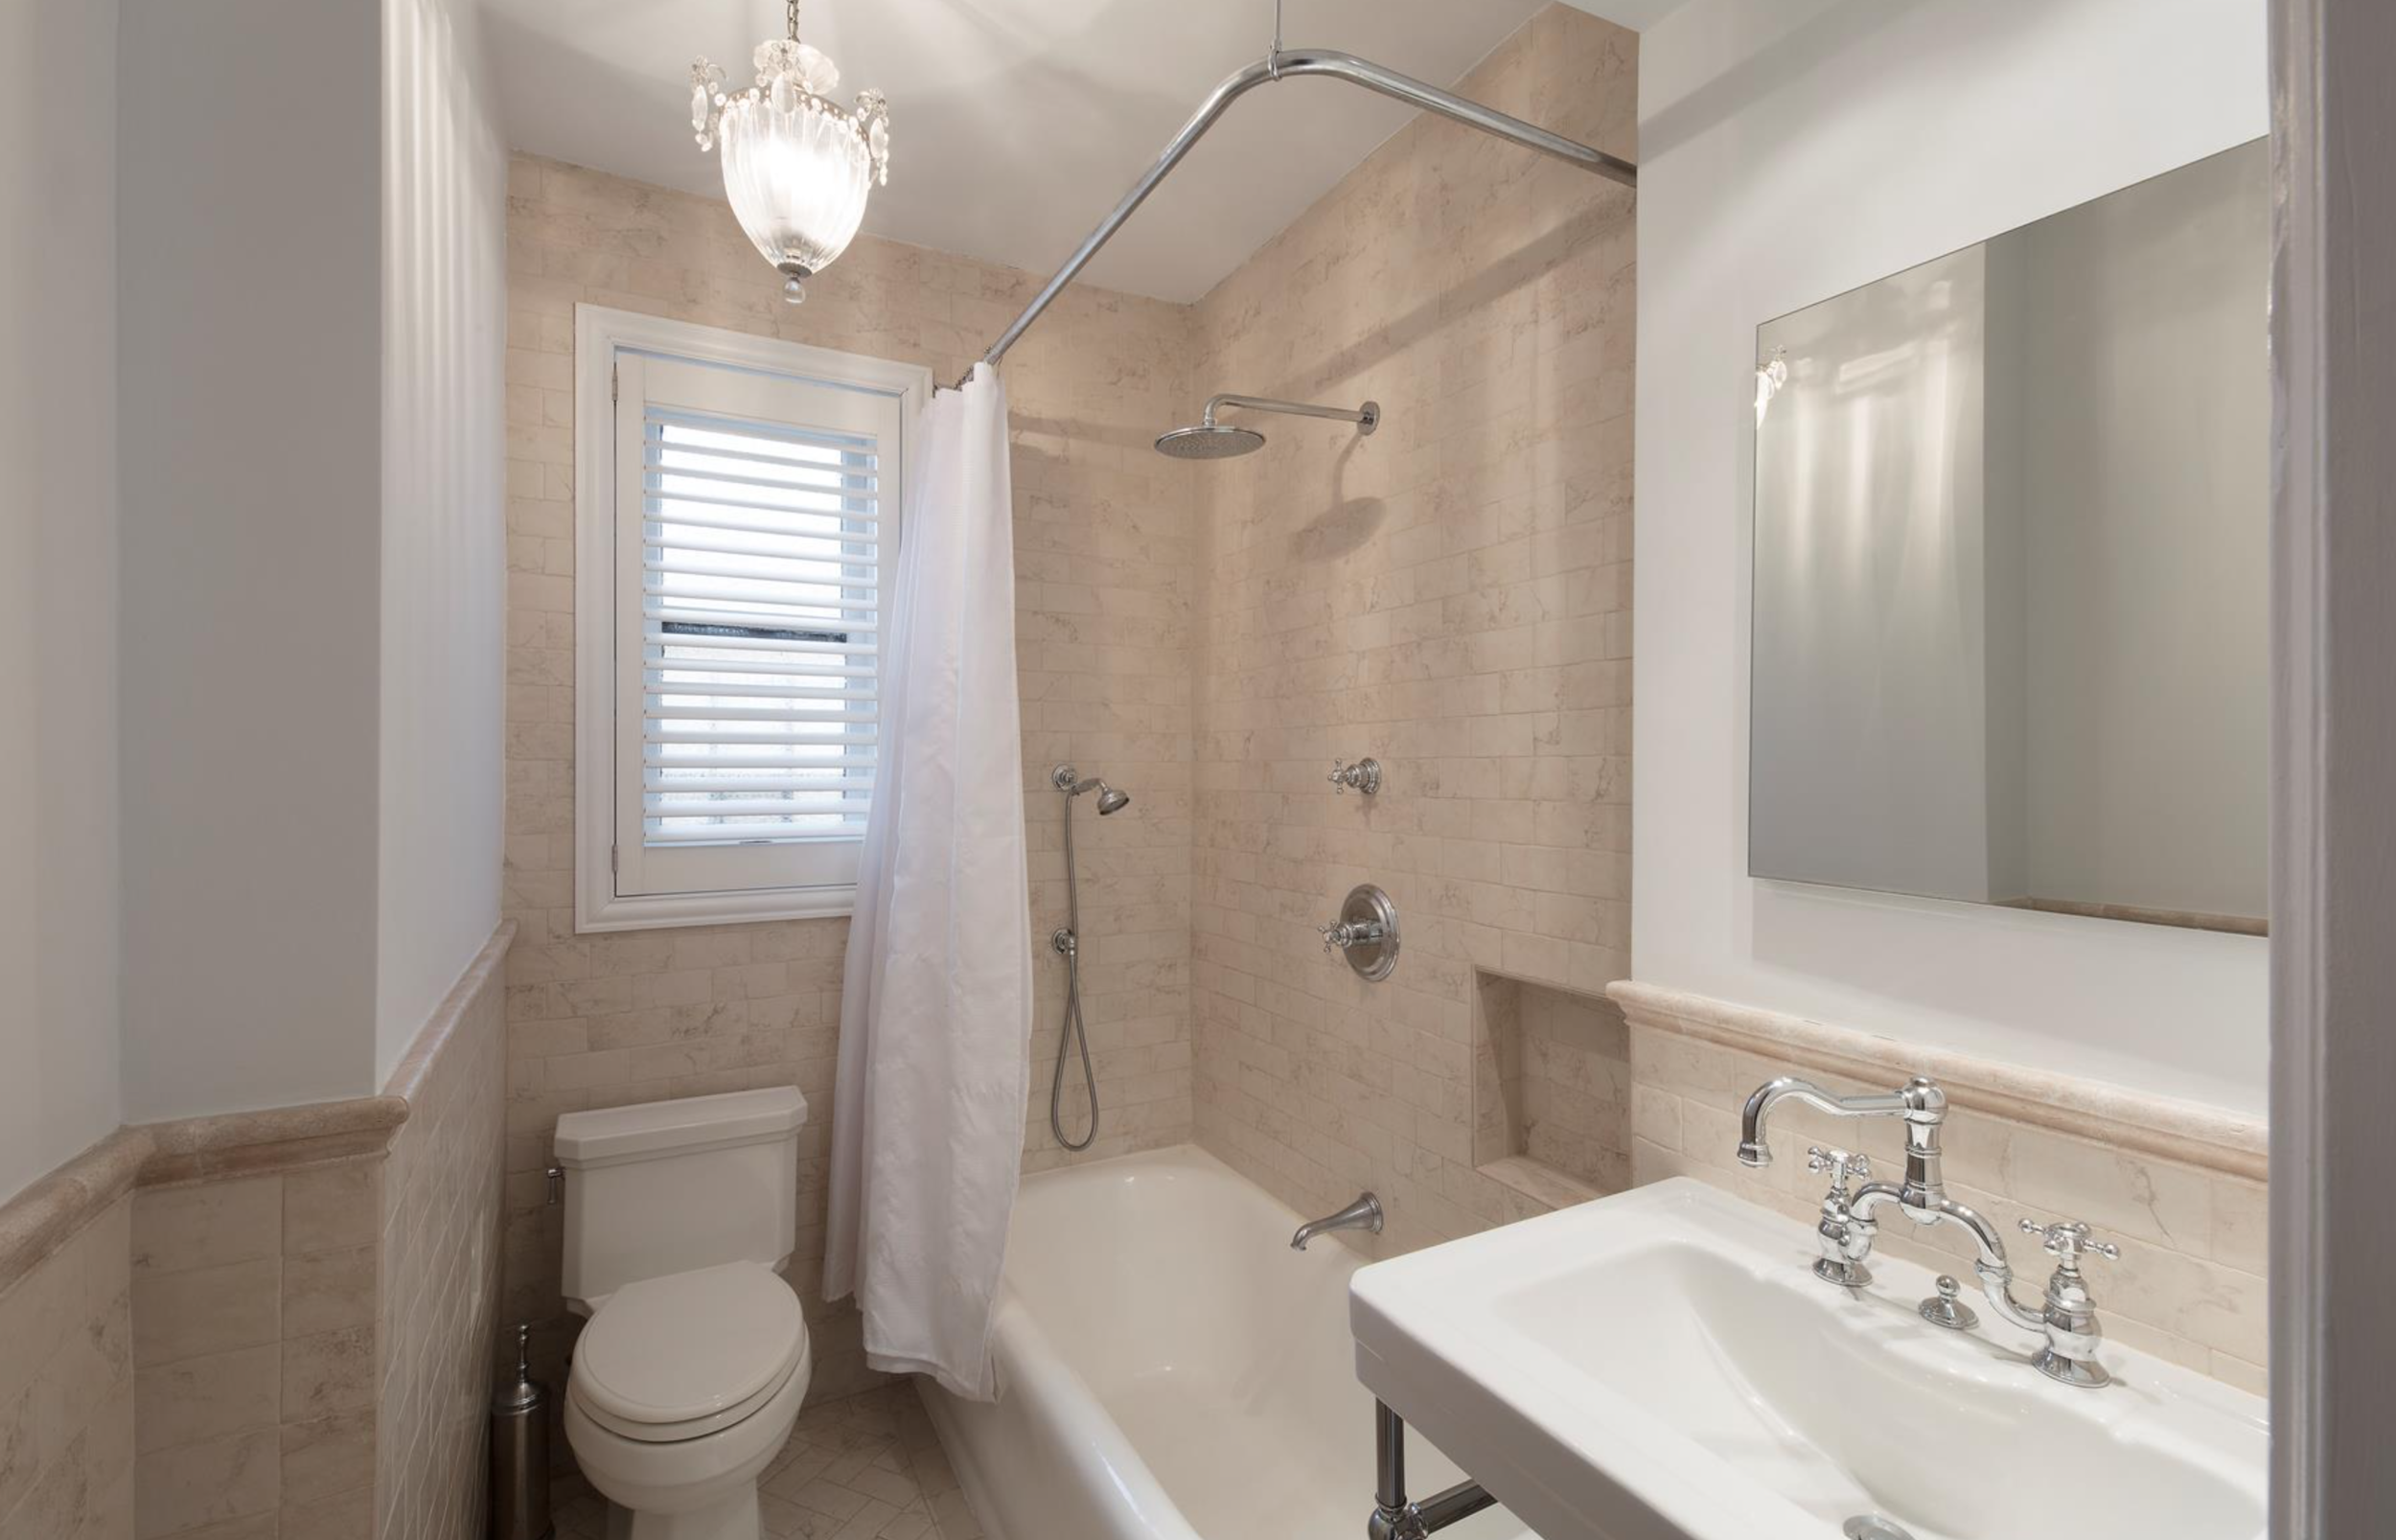 Check Out This Sutton Place Co-Op Where Old World Charm Meets Modern Living Asking $1.895 Million